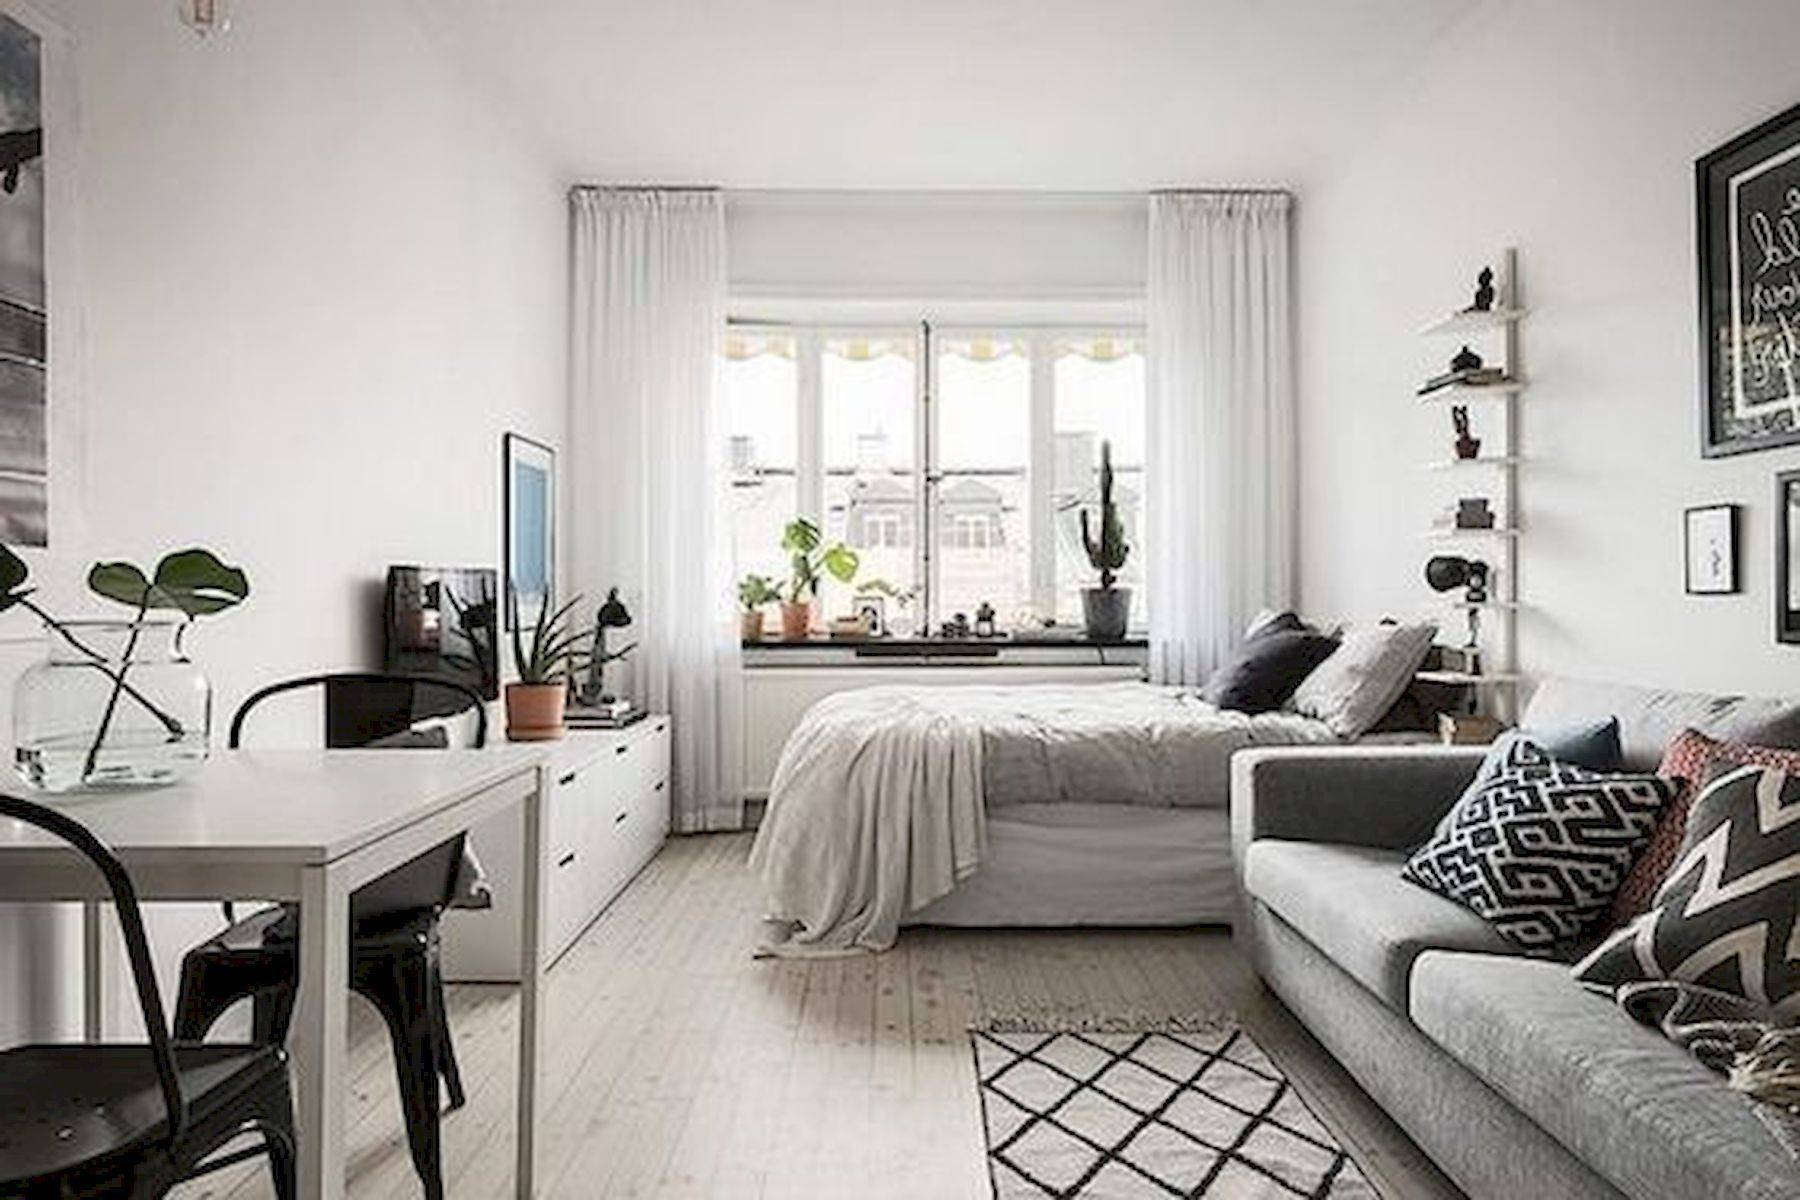 Studio Apt Design Beautiful Got A Super Small Studio Apartment Just because Your Square